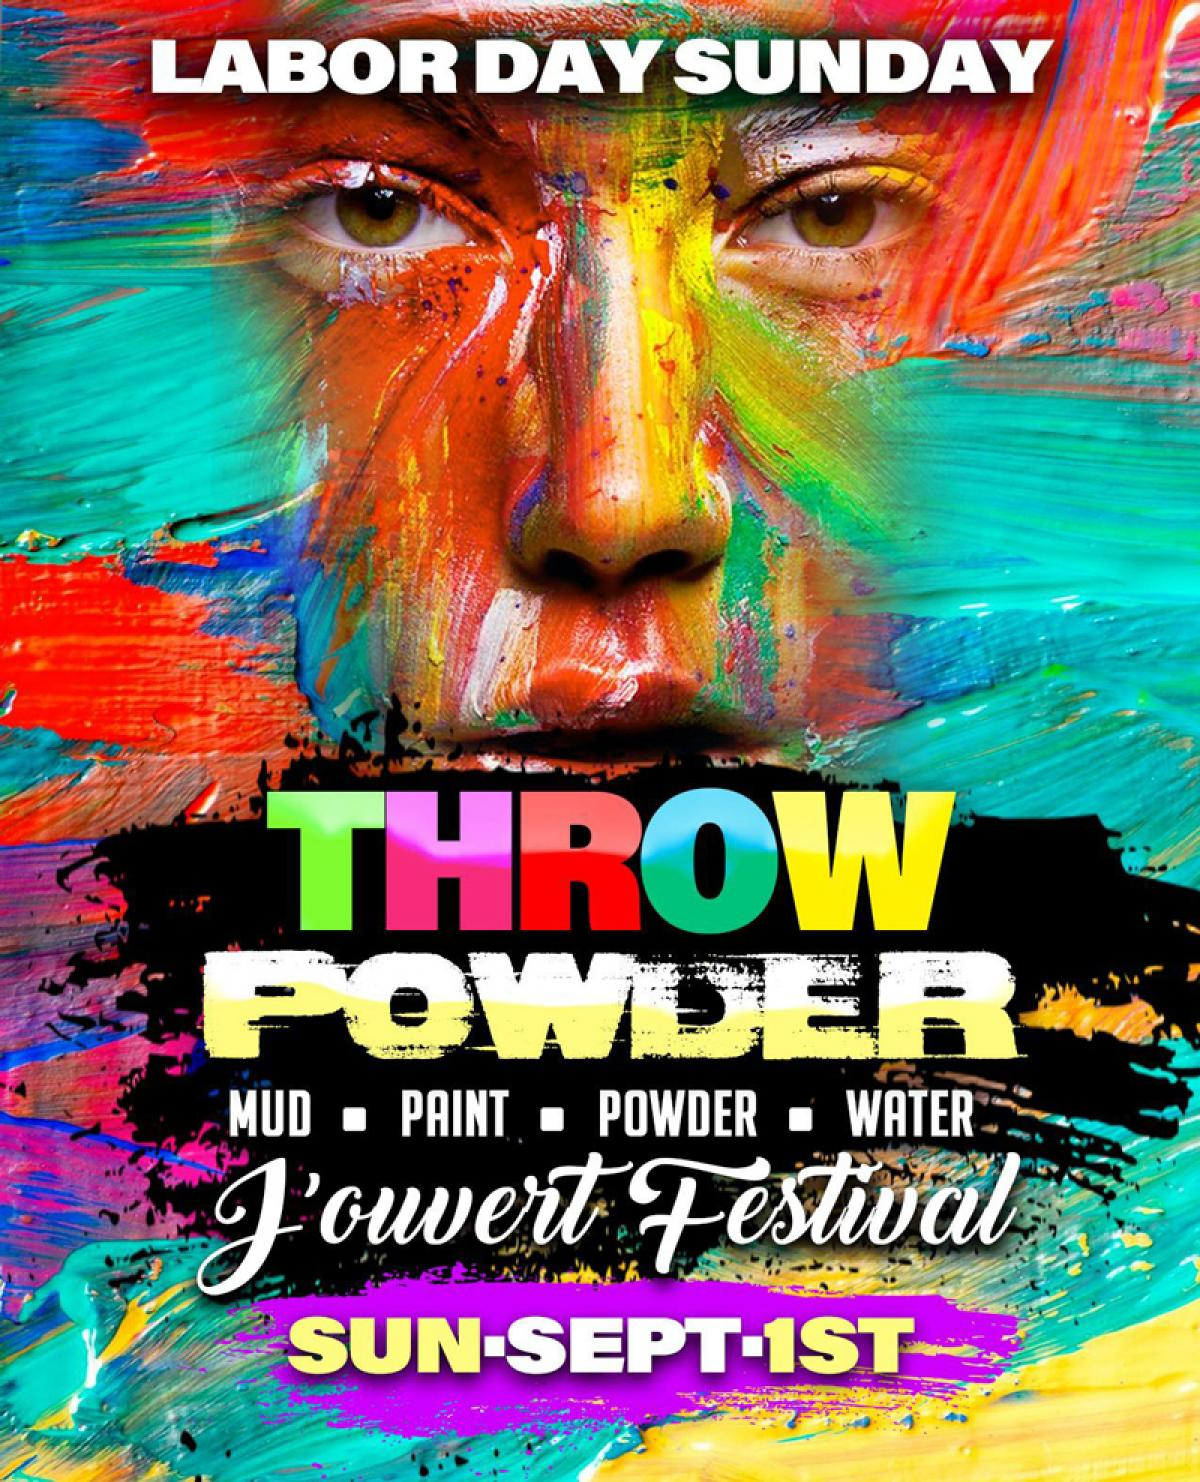 Throw Powder Fete flyer or graphic.